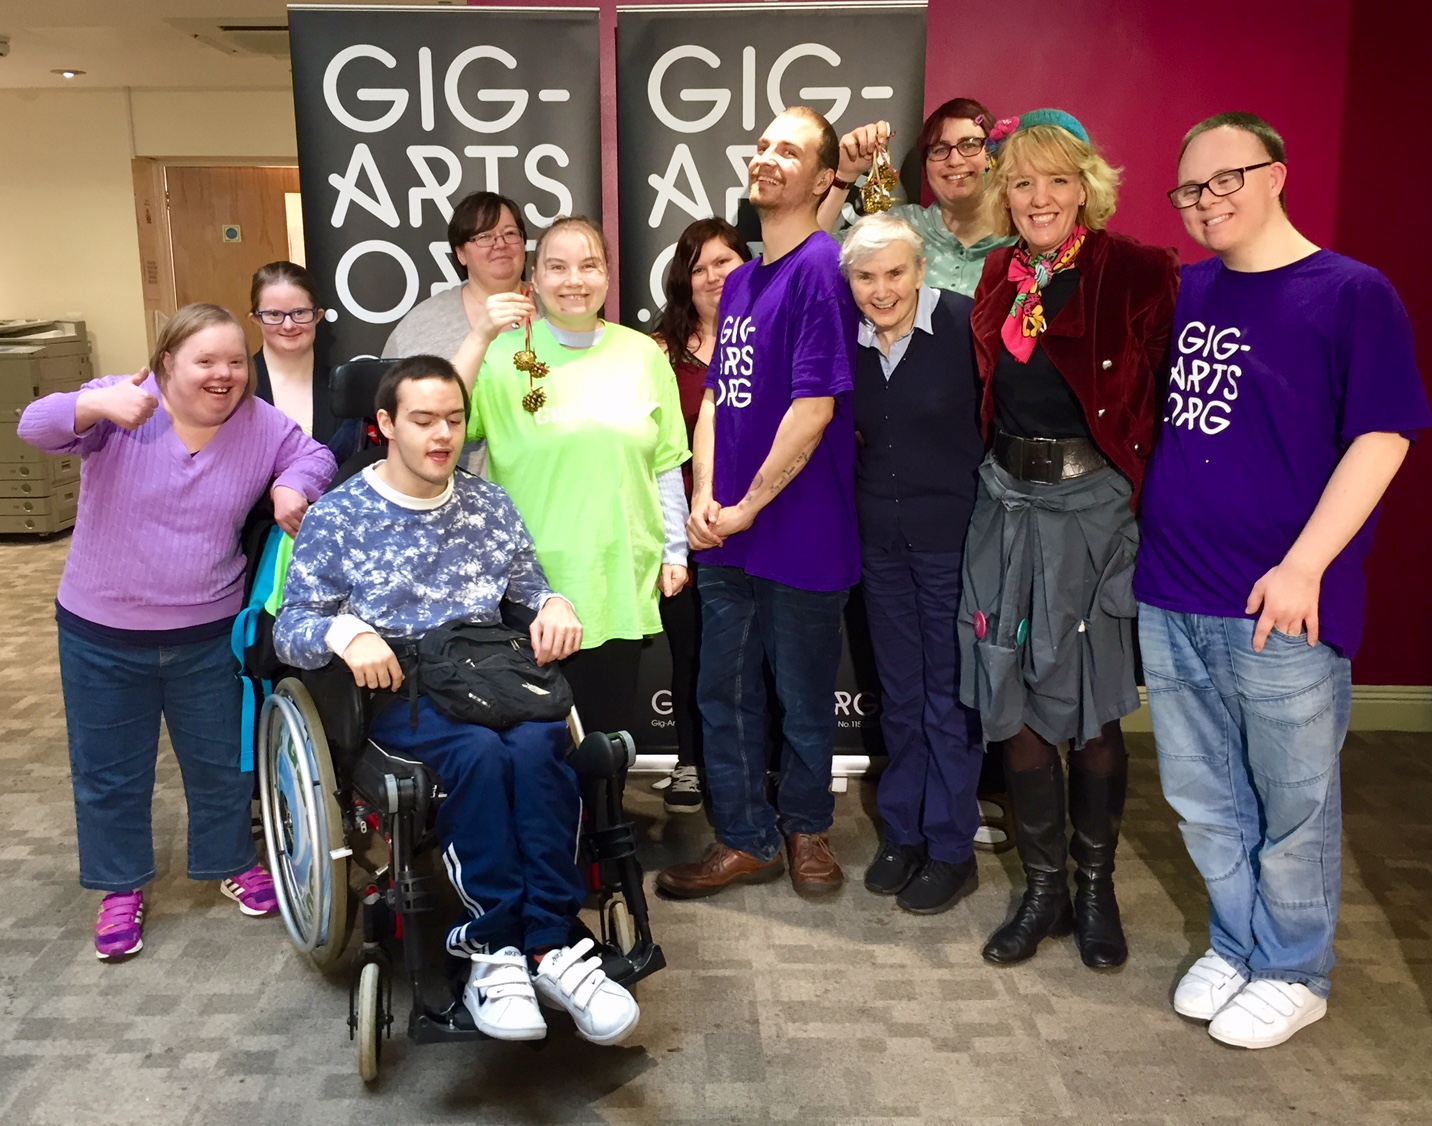 Come and join in with our all inclusive Bloxham Gig-Arts Project. We're meeting each month in September, October and November and have a grand finale Gig-Arts Show at Bloxham Mill Business Centre on Tuesday 5th December 2017.